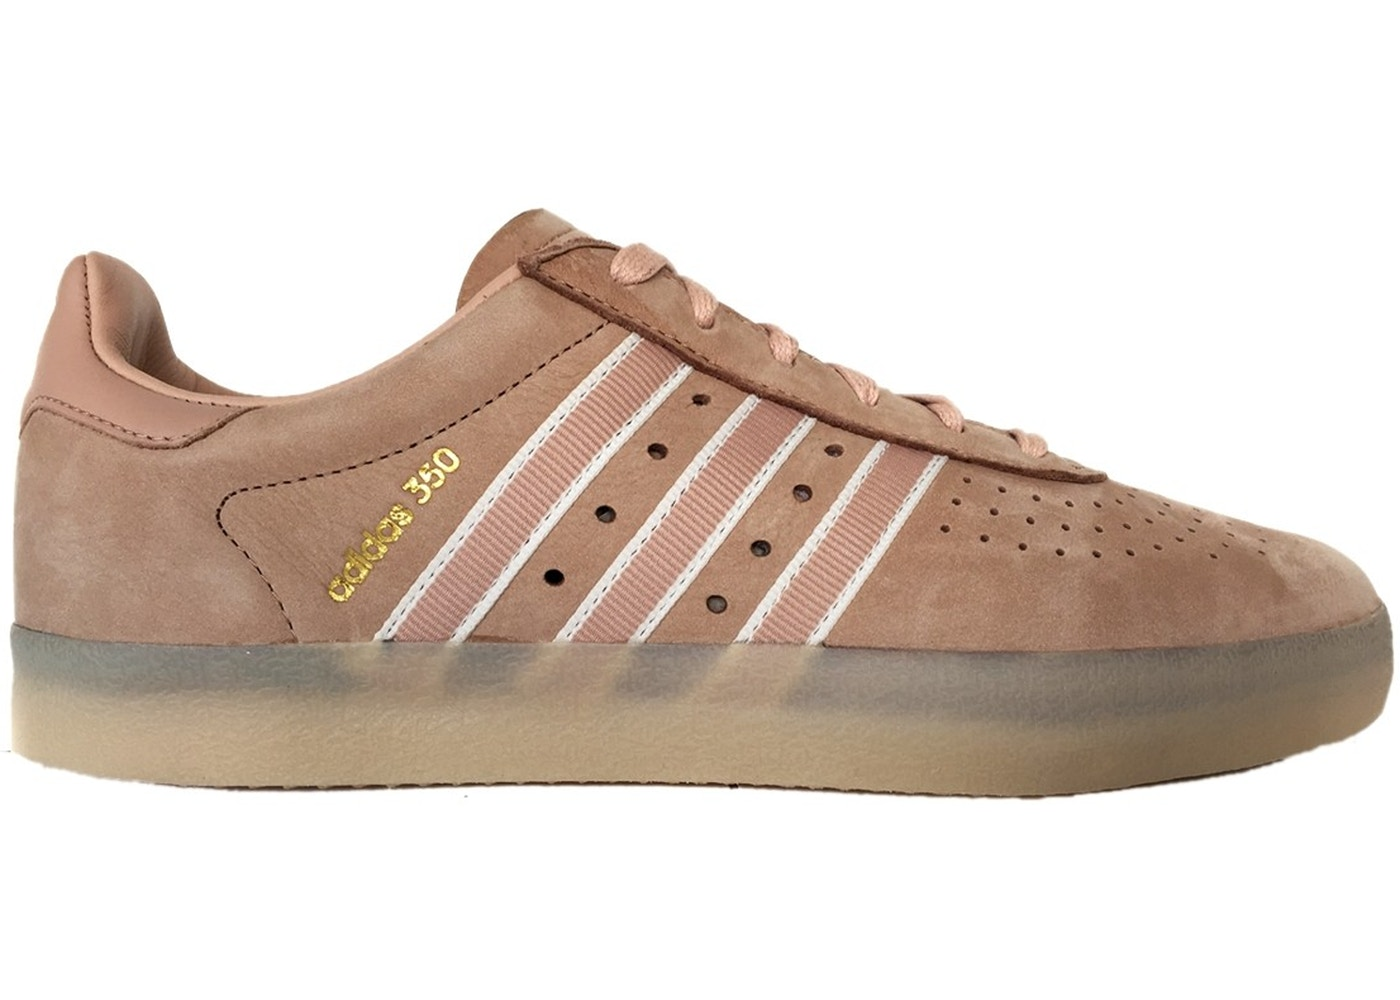 6ad4c089b adidas 350 Oyster Holdings Ash Pearl - DB1976